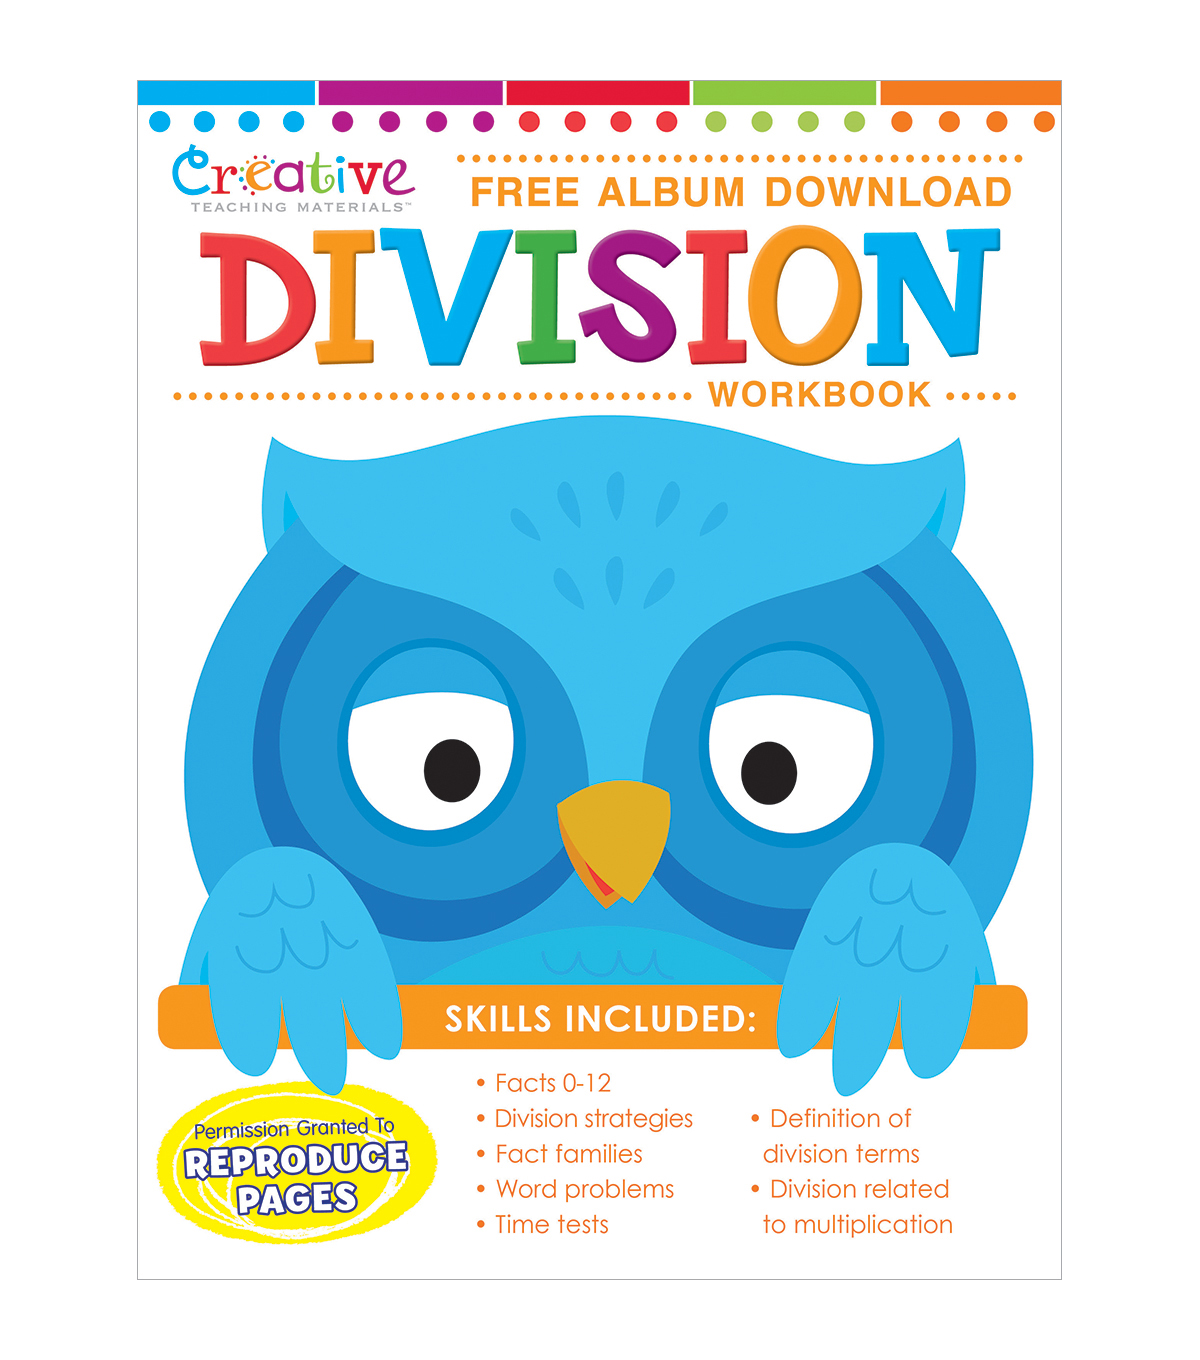 Creative Teaching Materials Workbook-Division